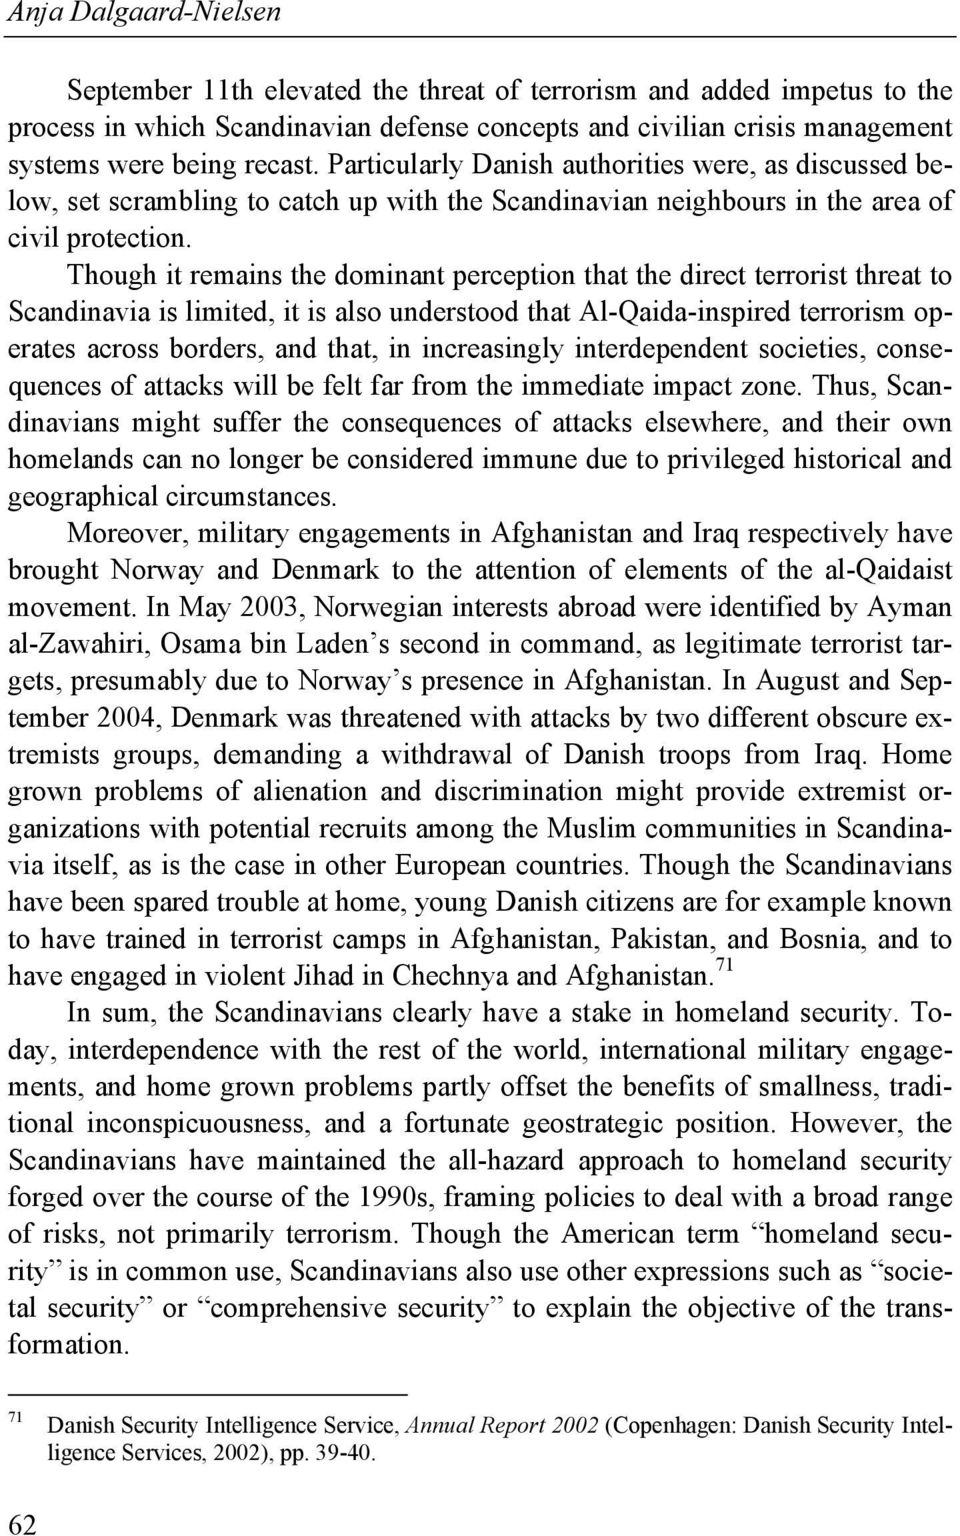 Though it remains the dominant perception that the direct terrorist threat to Scandinavia is limited, it is also understood that Al-Qaida-inspired terrorism operates across borders, and that, in